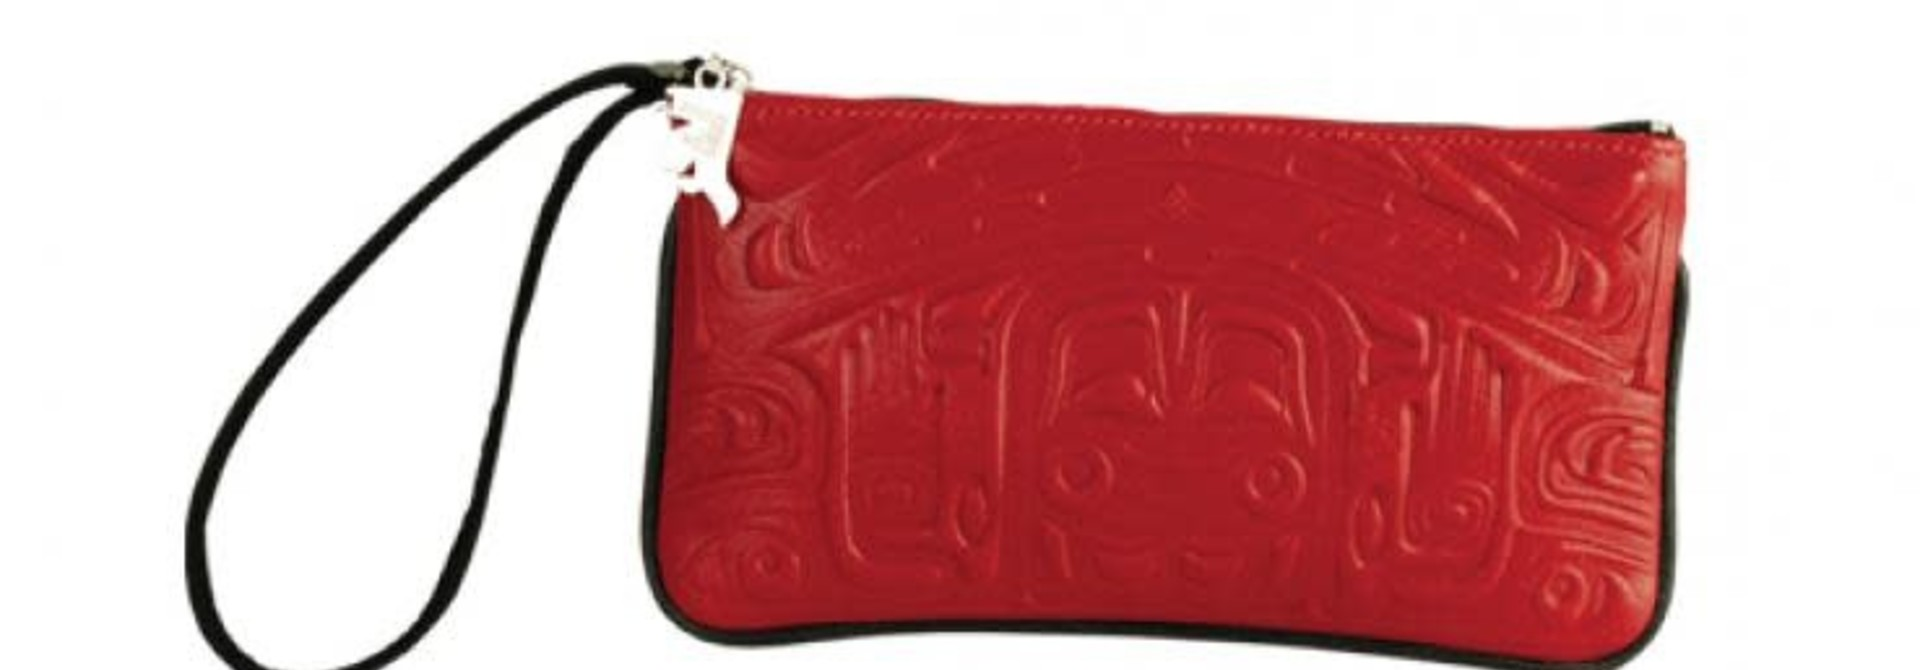 Leather Wristlet in Bearbox Design - Red